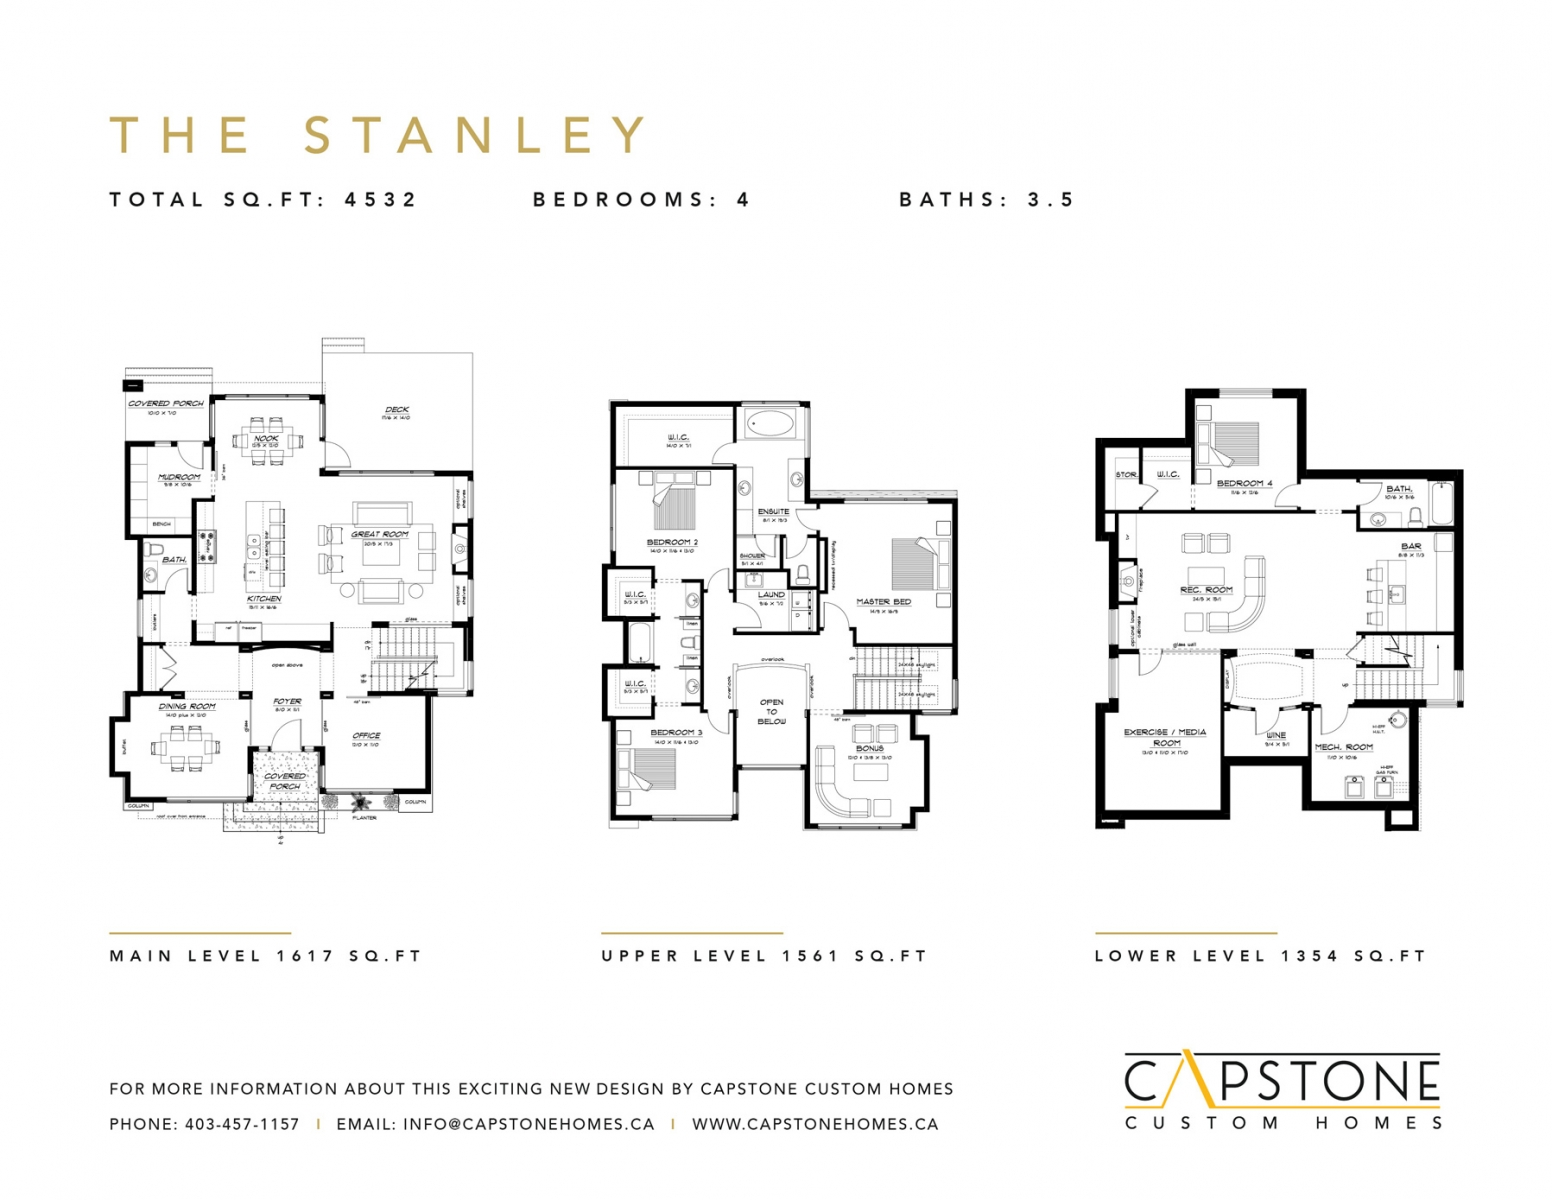 The Stanley - Feature Sheet